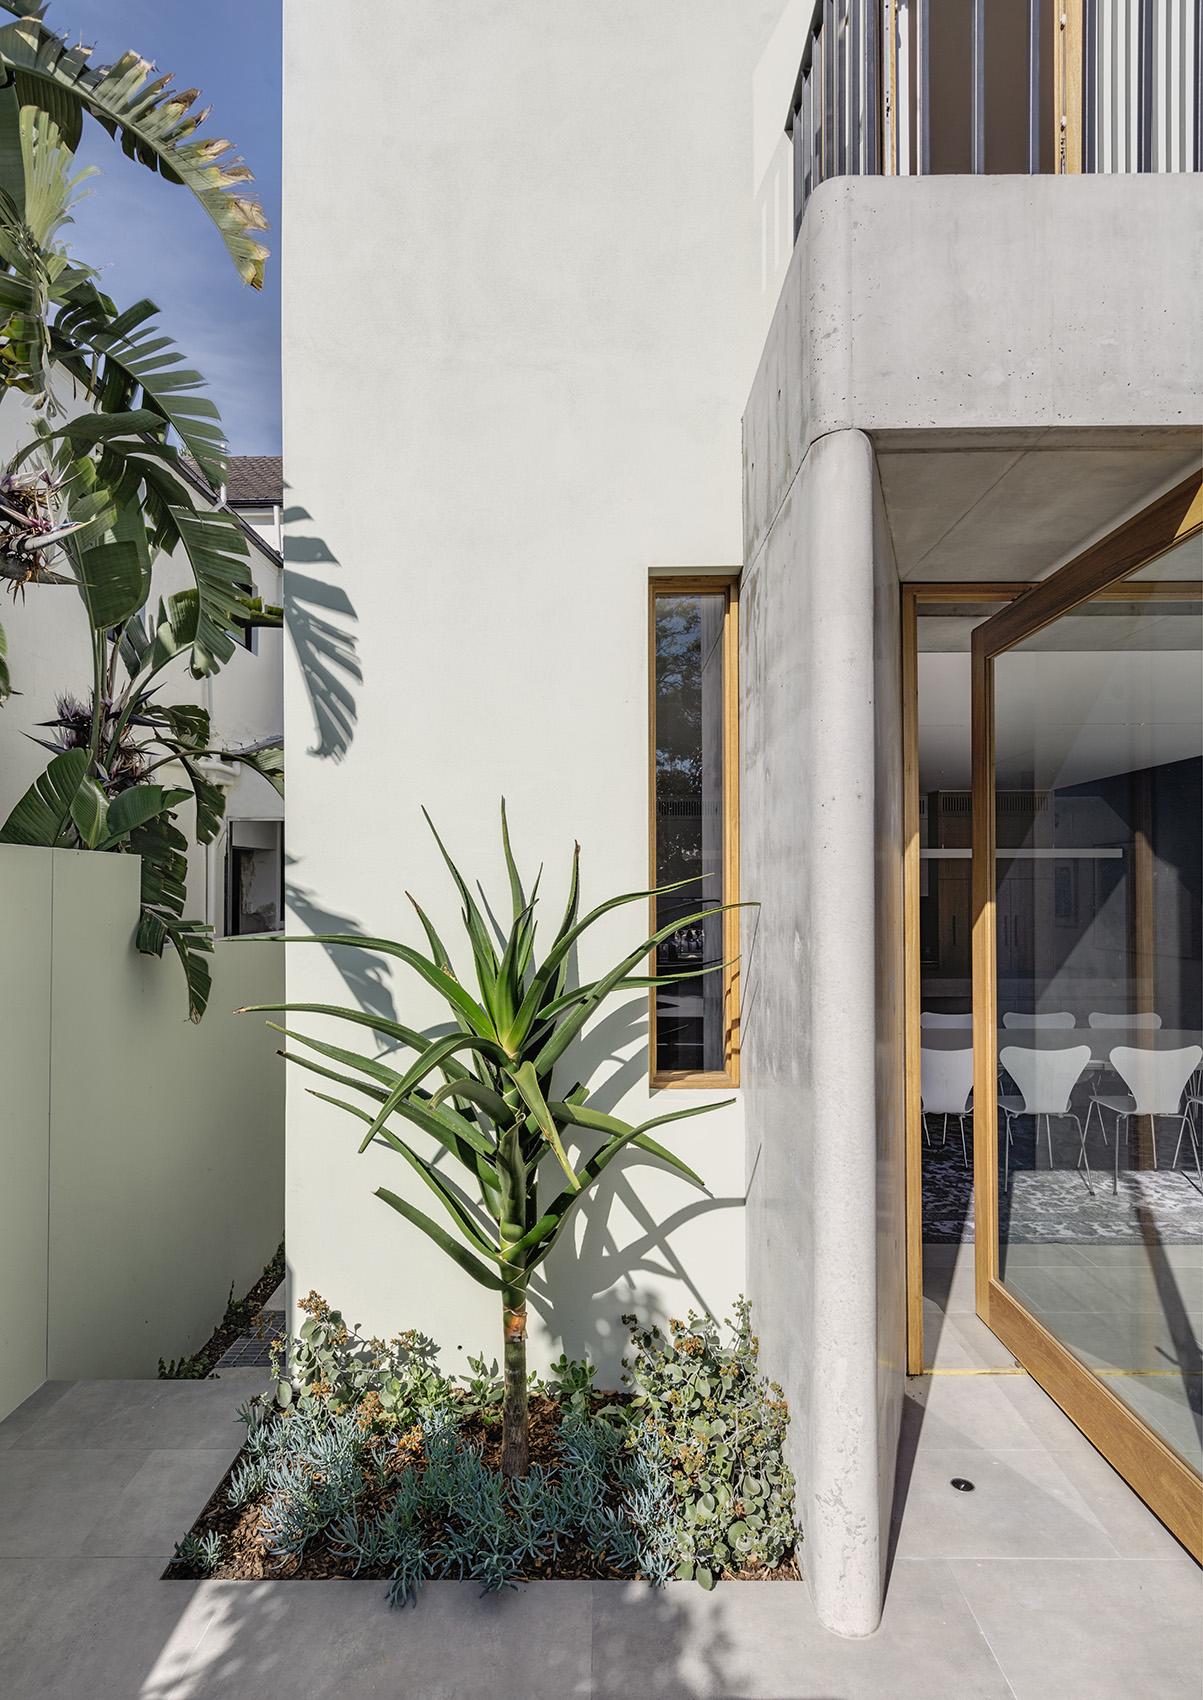 The External Approach Was To Integrate Landscape Elements That Complement The Entry Experience.